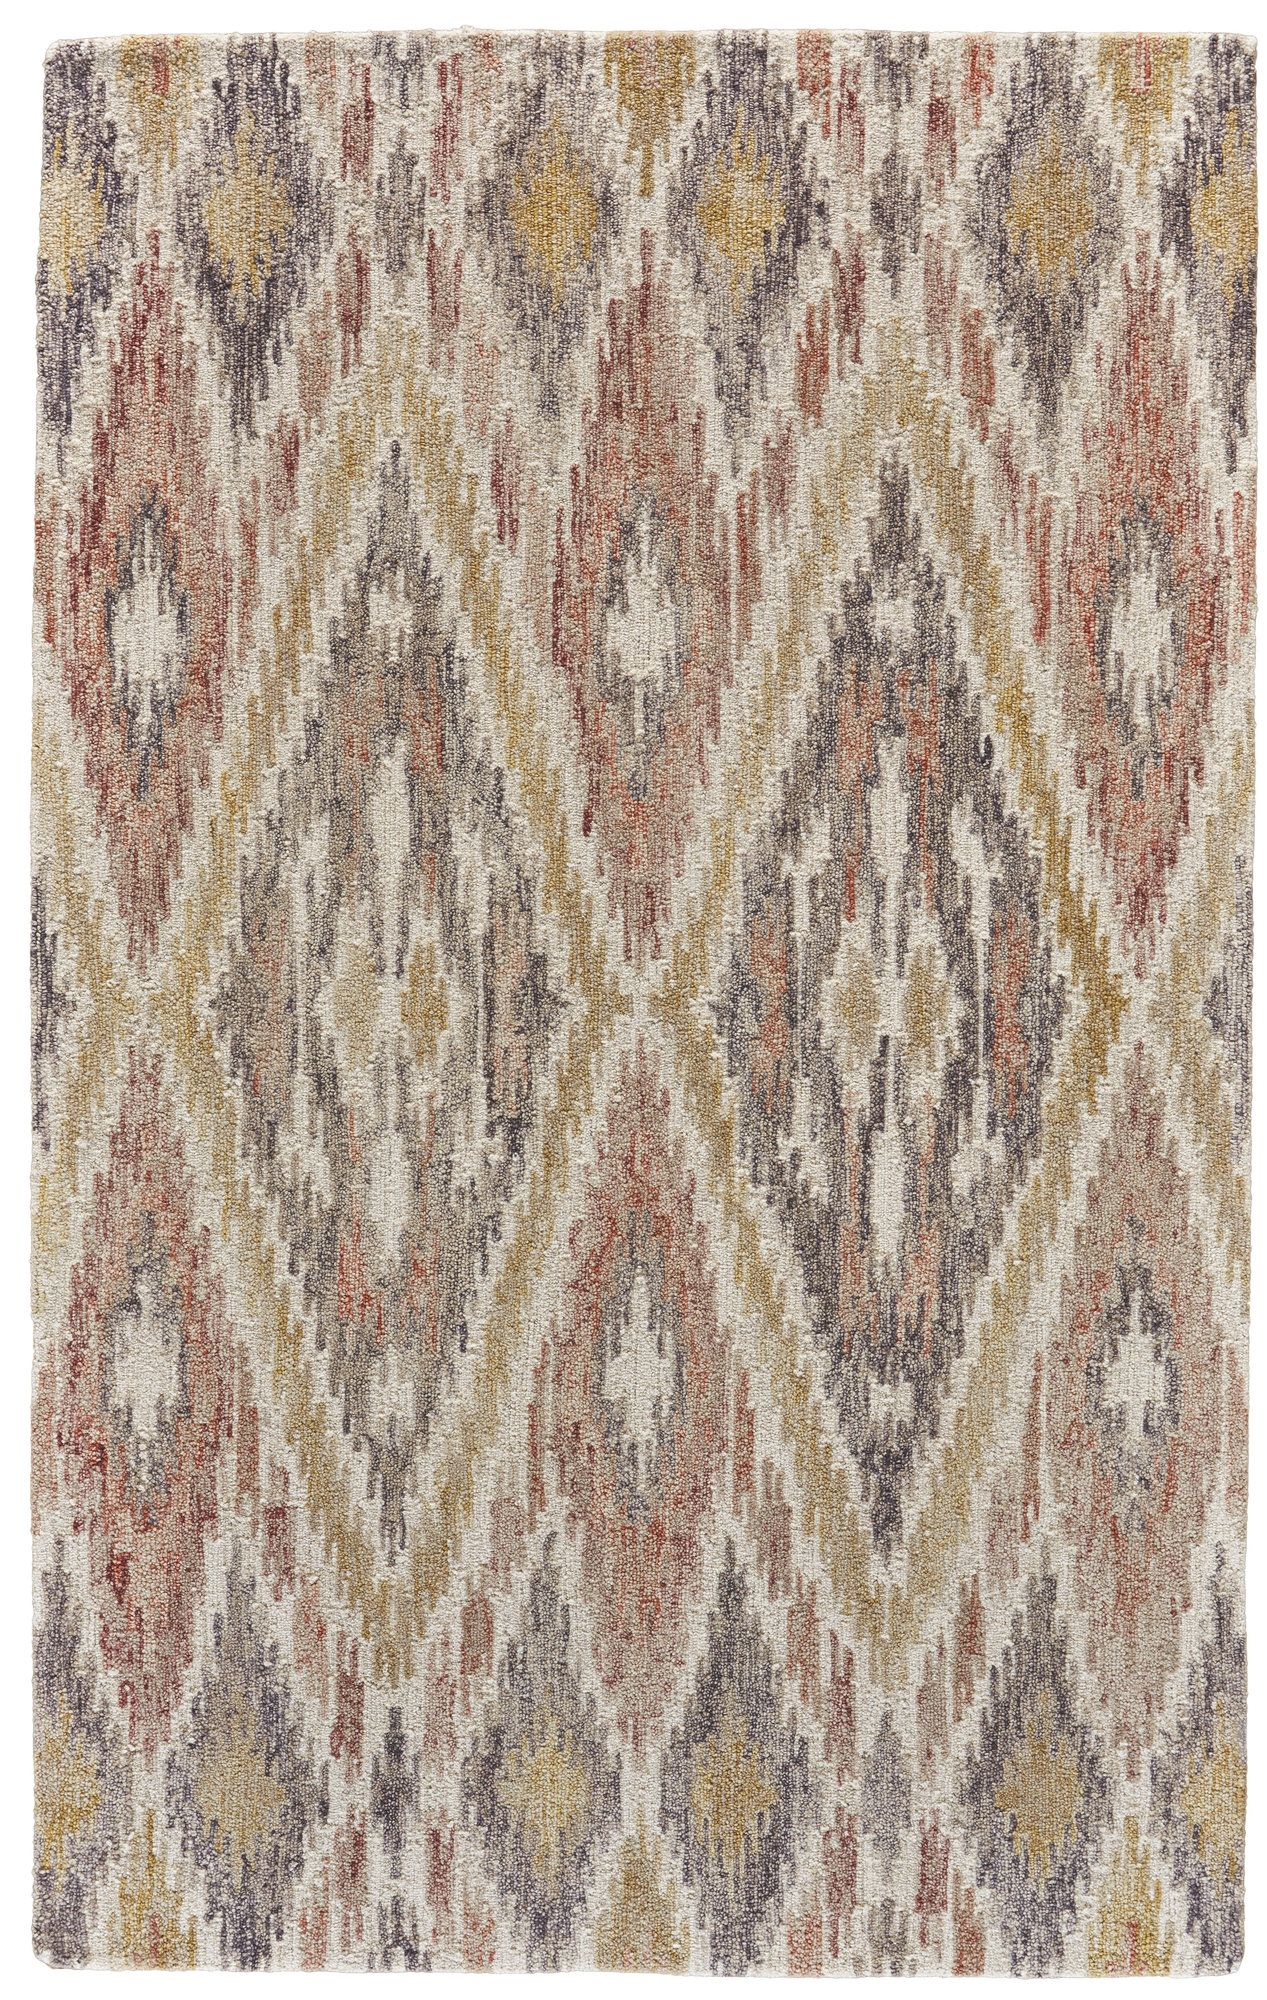 Carlotta Geometric Handmade Tufted Wool Cotton Brown Yellow Area Rug In 2021 Area Rugs Hand Tufted Rugs Tufted Rug